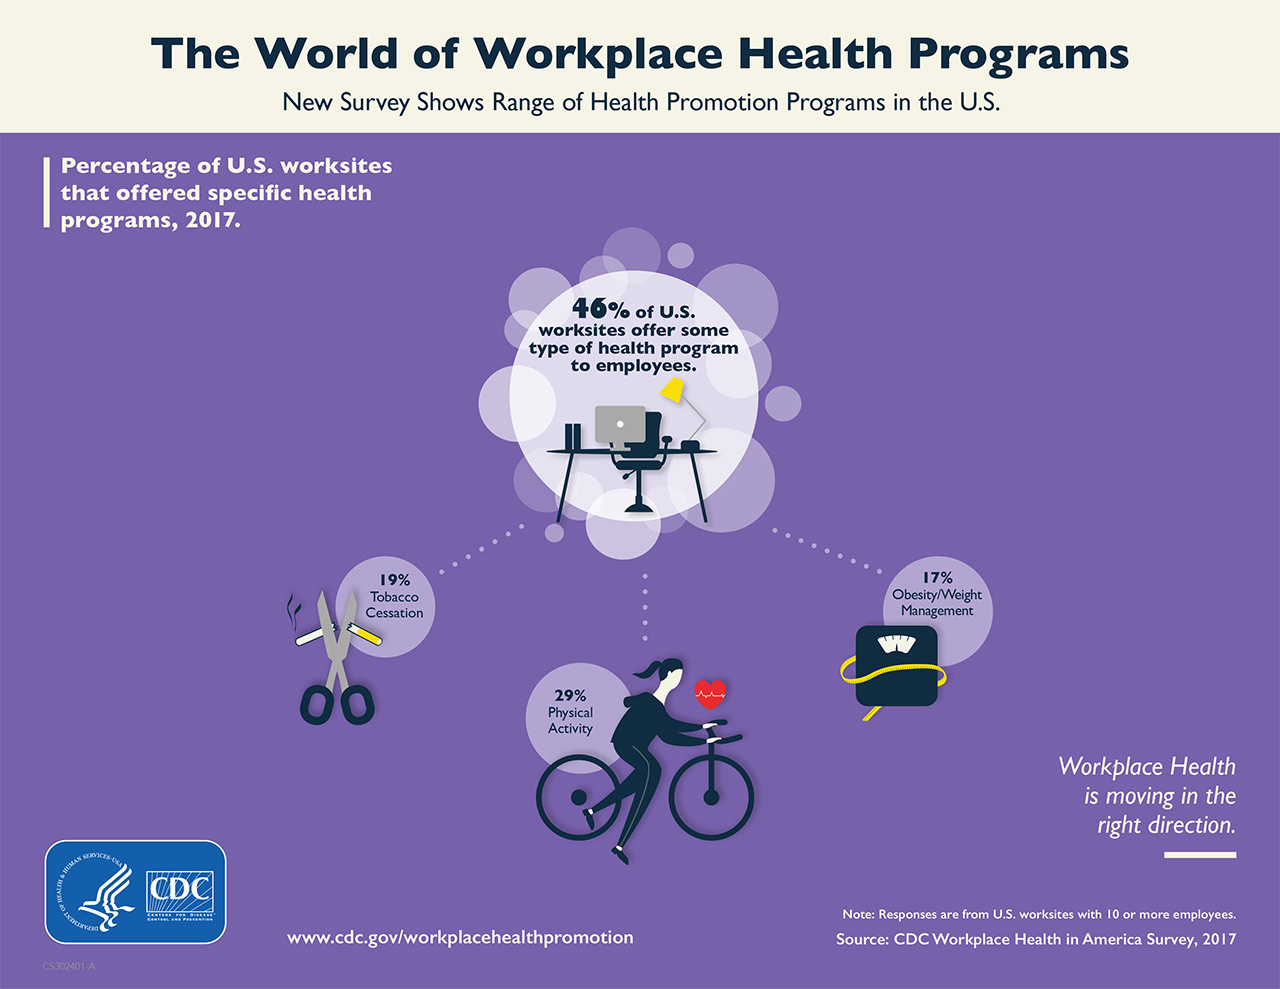 The World of workplace health programs : new survey shows range of health promotion programs in the U.S.